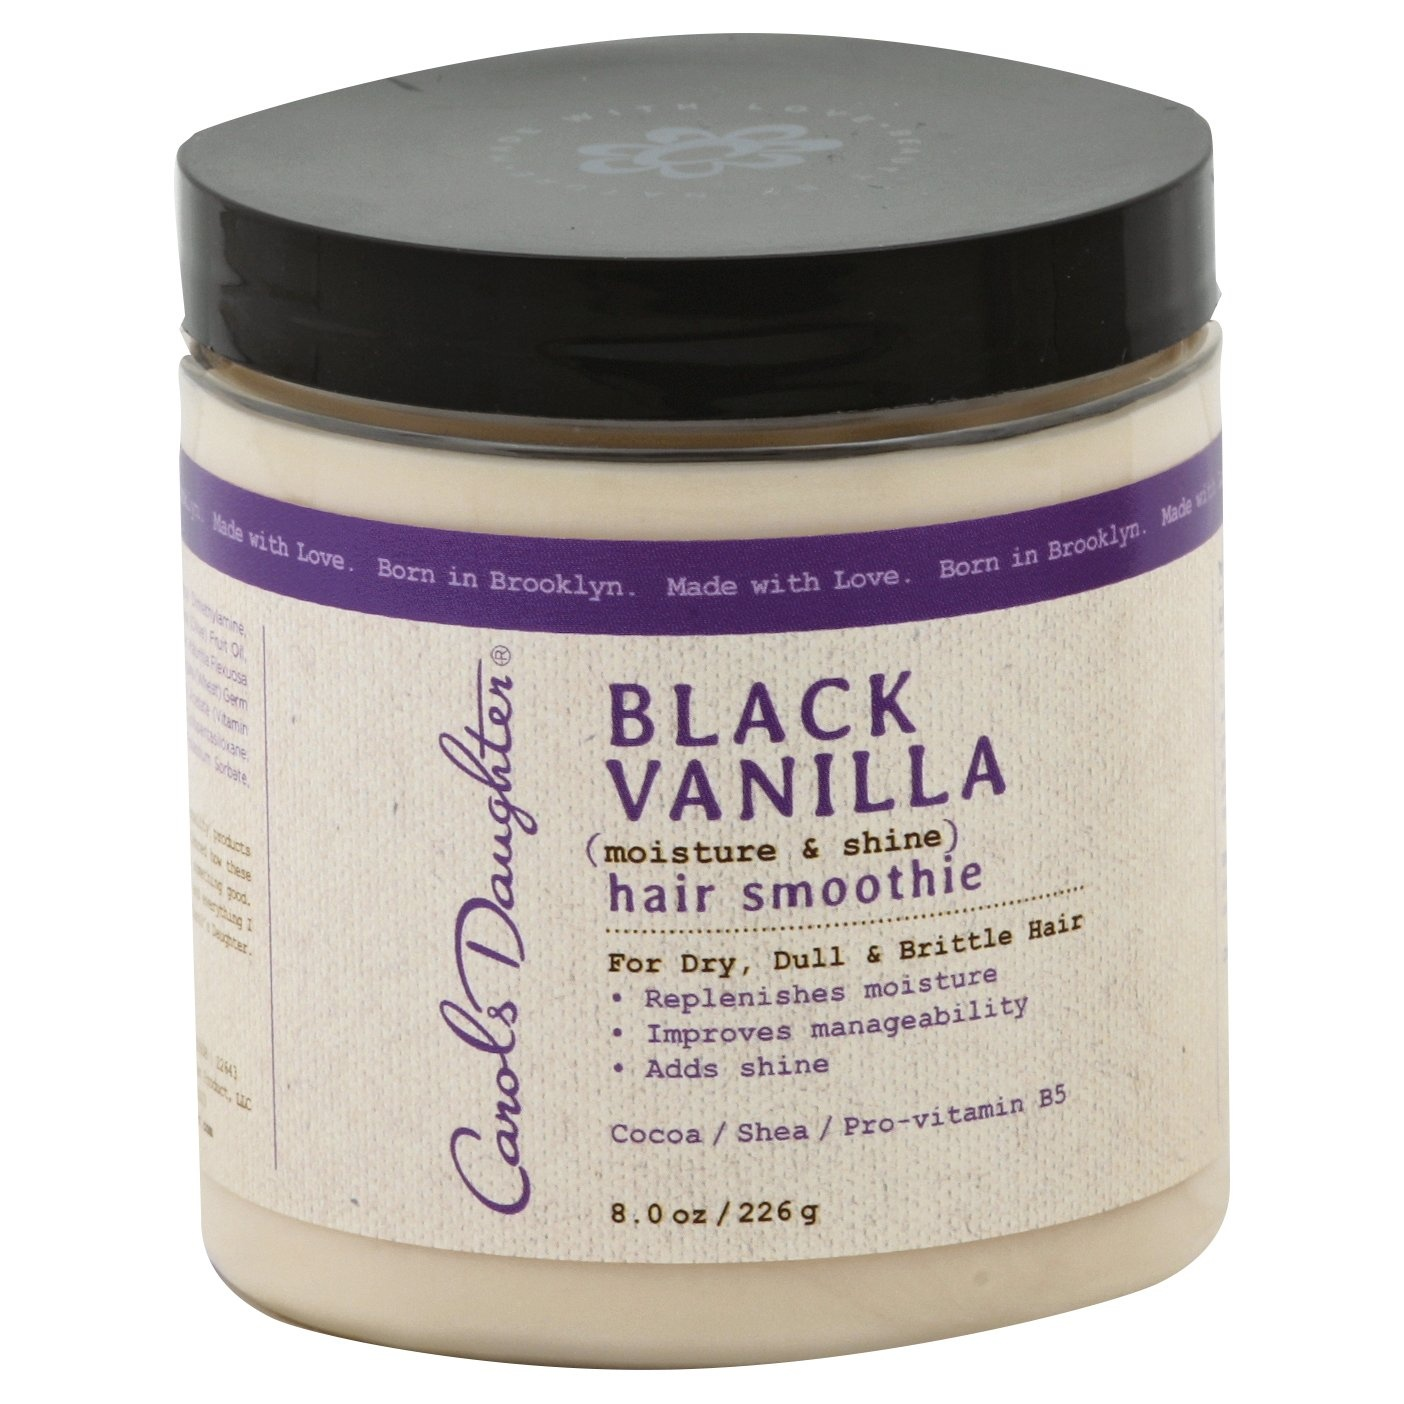 slide 1 of 6, Carol's Daughter Black Vanilla Moisture And Shine Hair Smoothie,